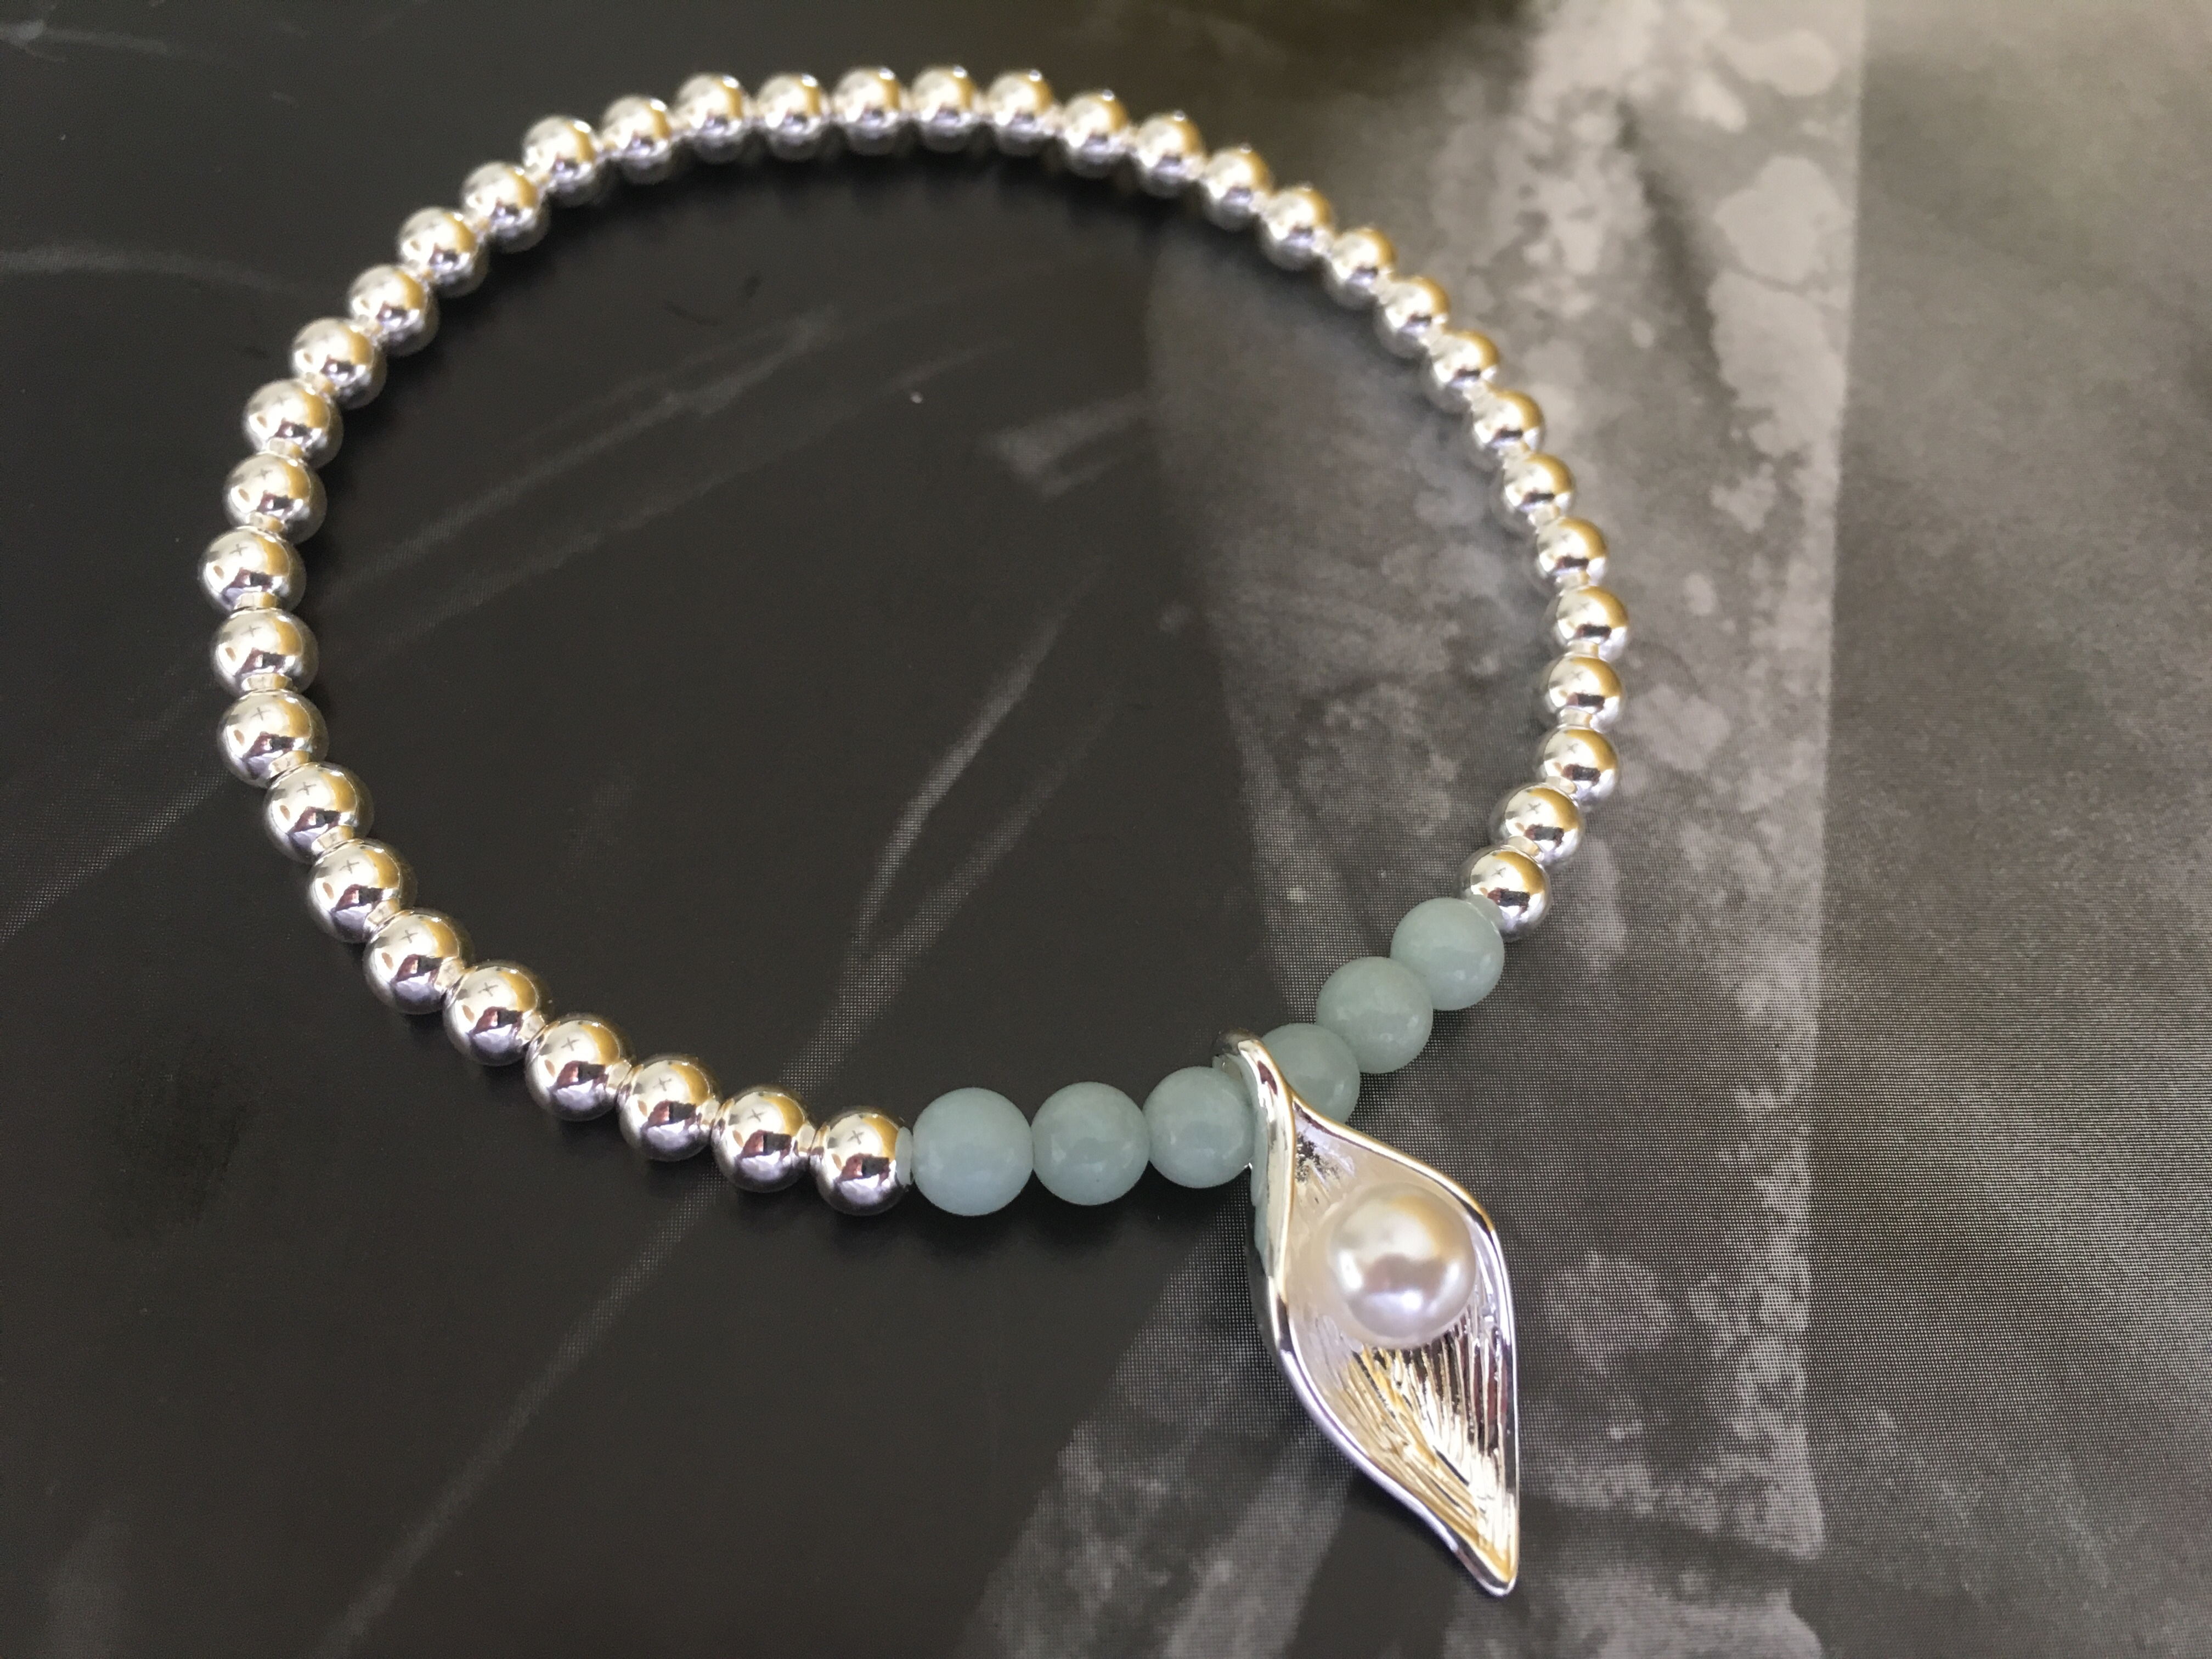 4mm silver with the Amazonite stones